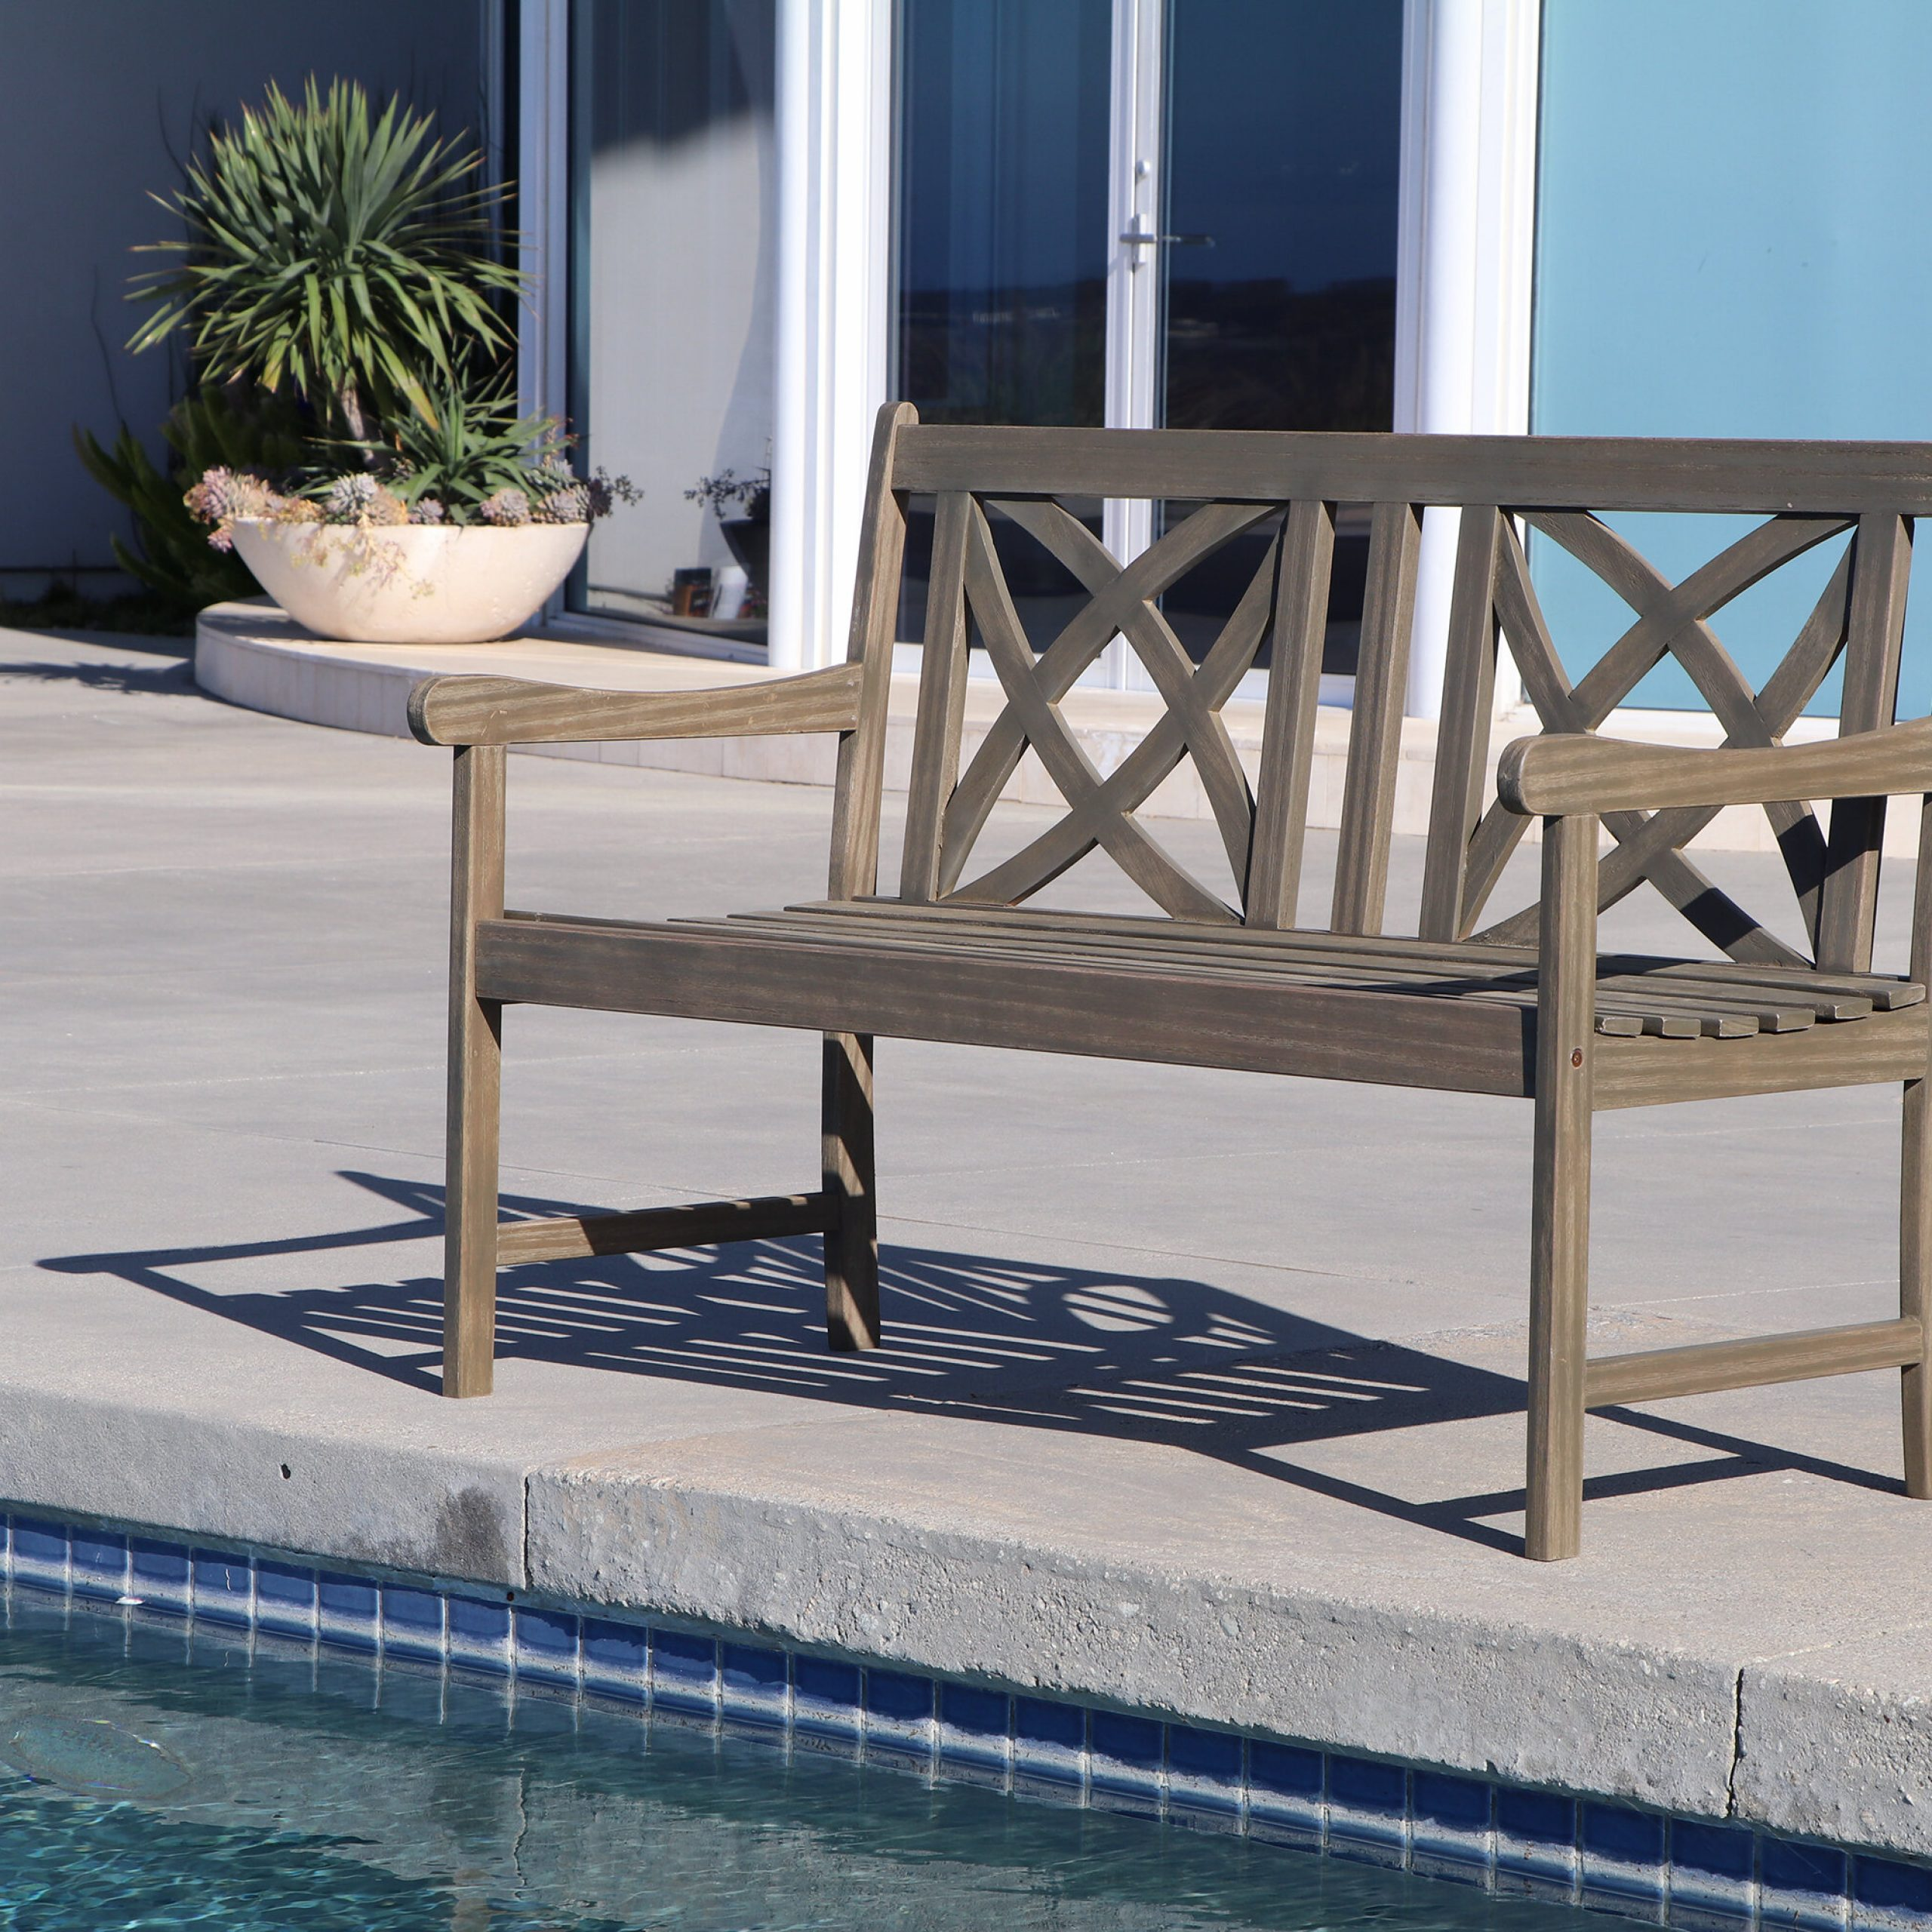 Shelbie Garden Bench Pertaining To Ismenia Checkered Outdoor Cast Aluminum Patio Garden Benches (View 10 of 25)